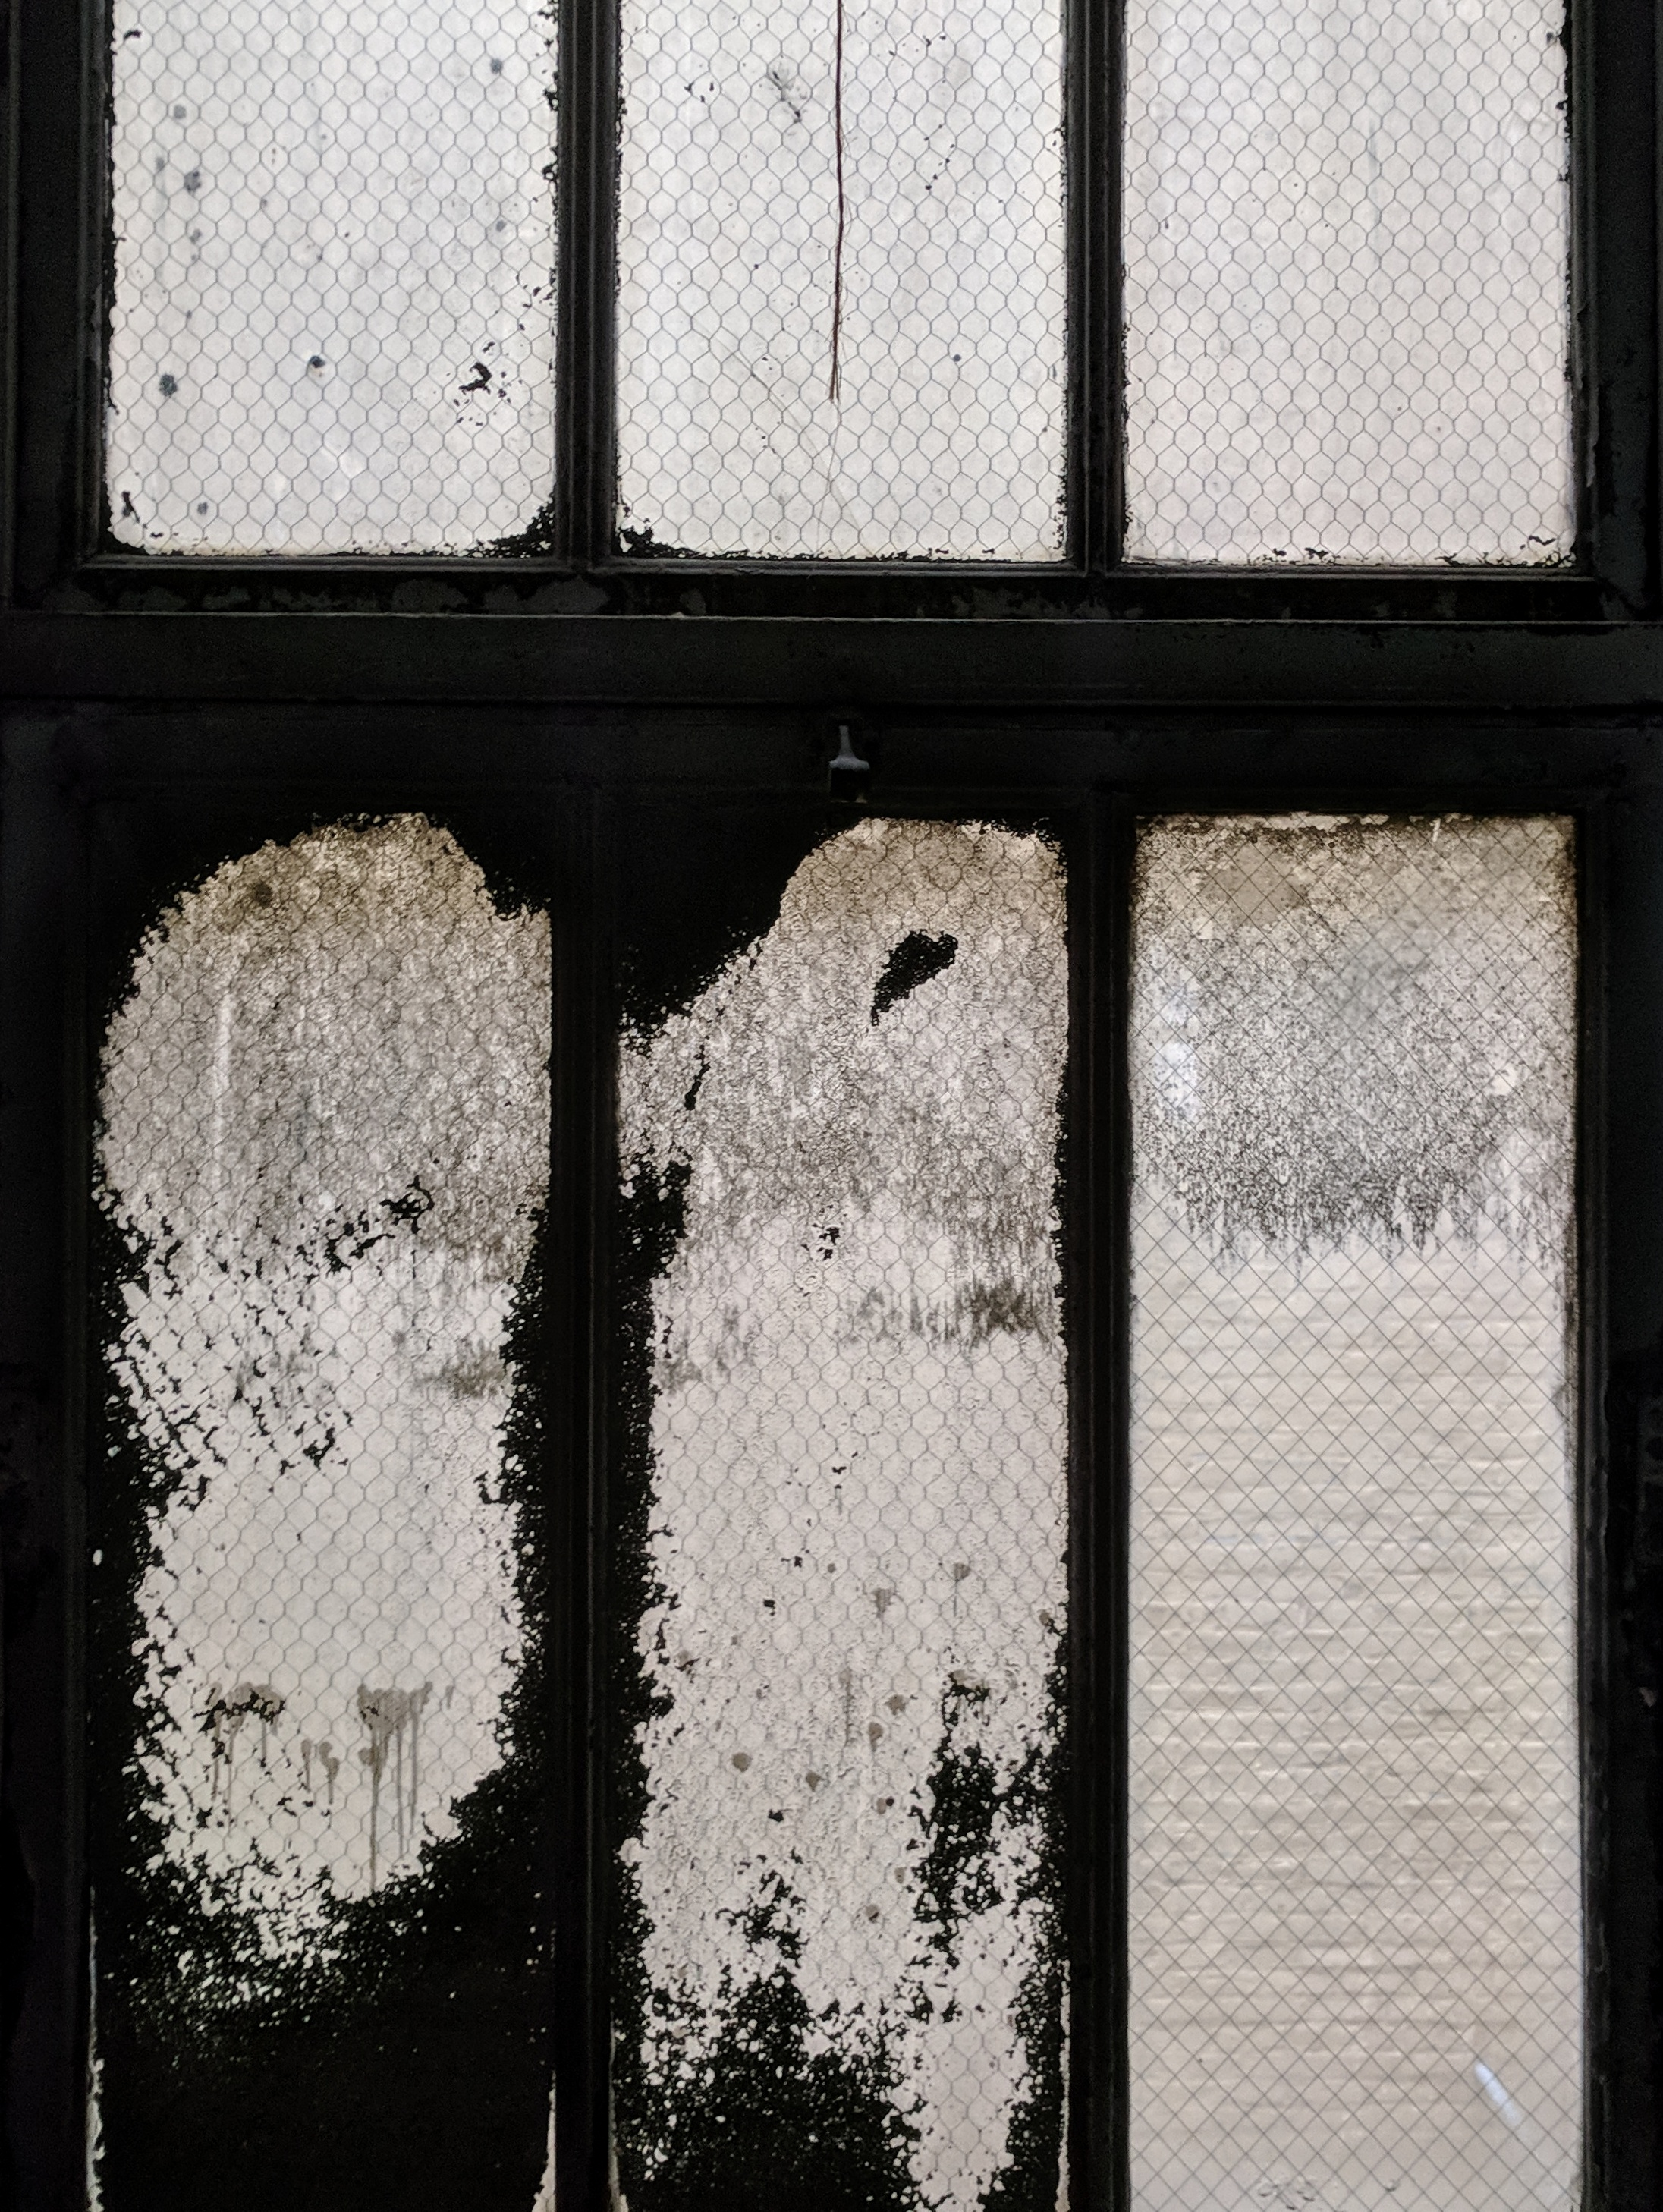 Warehouse Windows by Courtney Celley